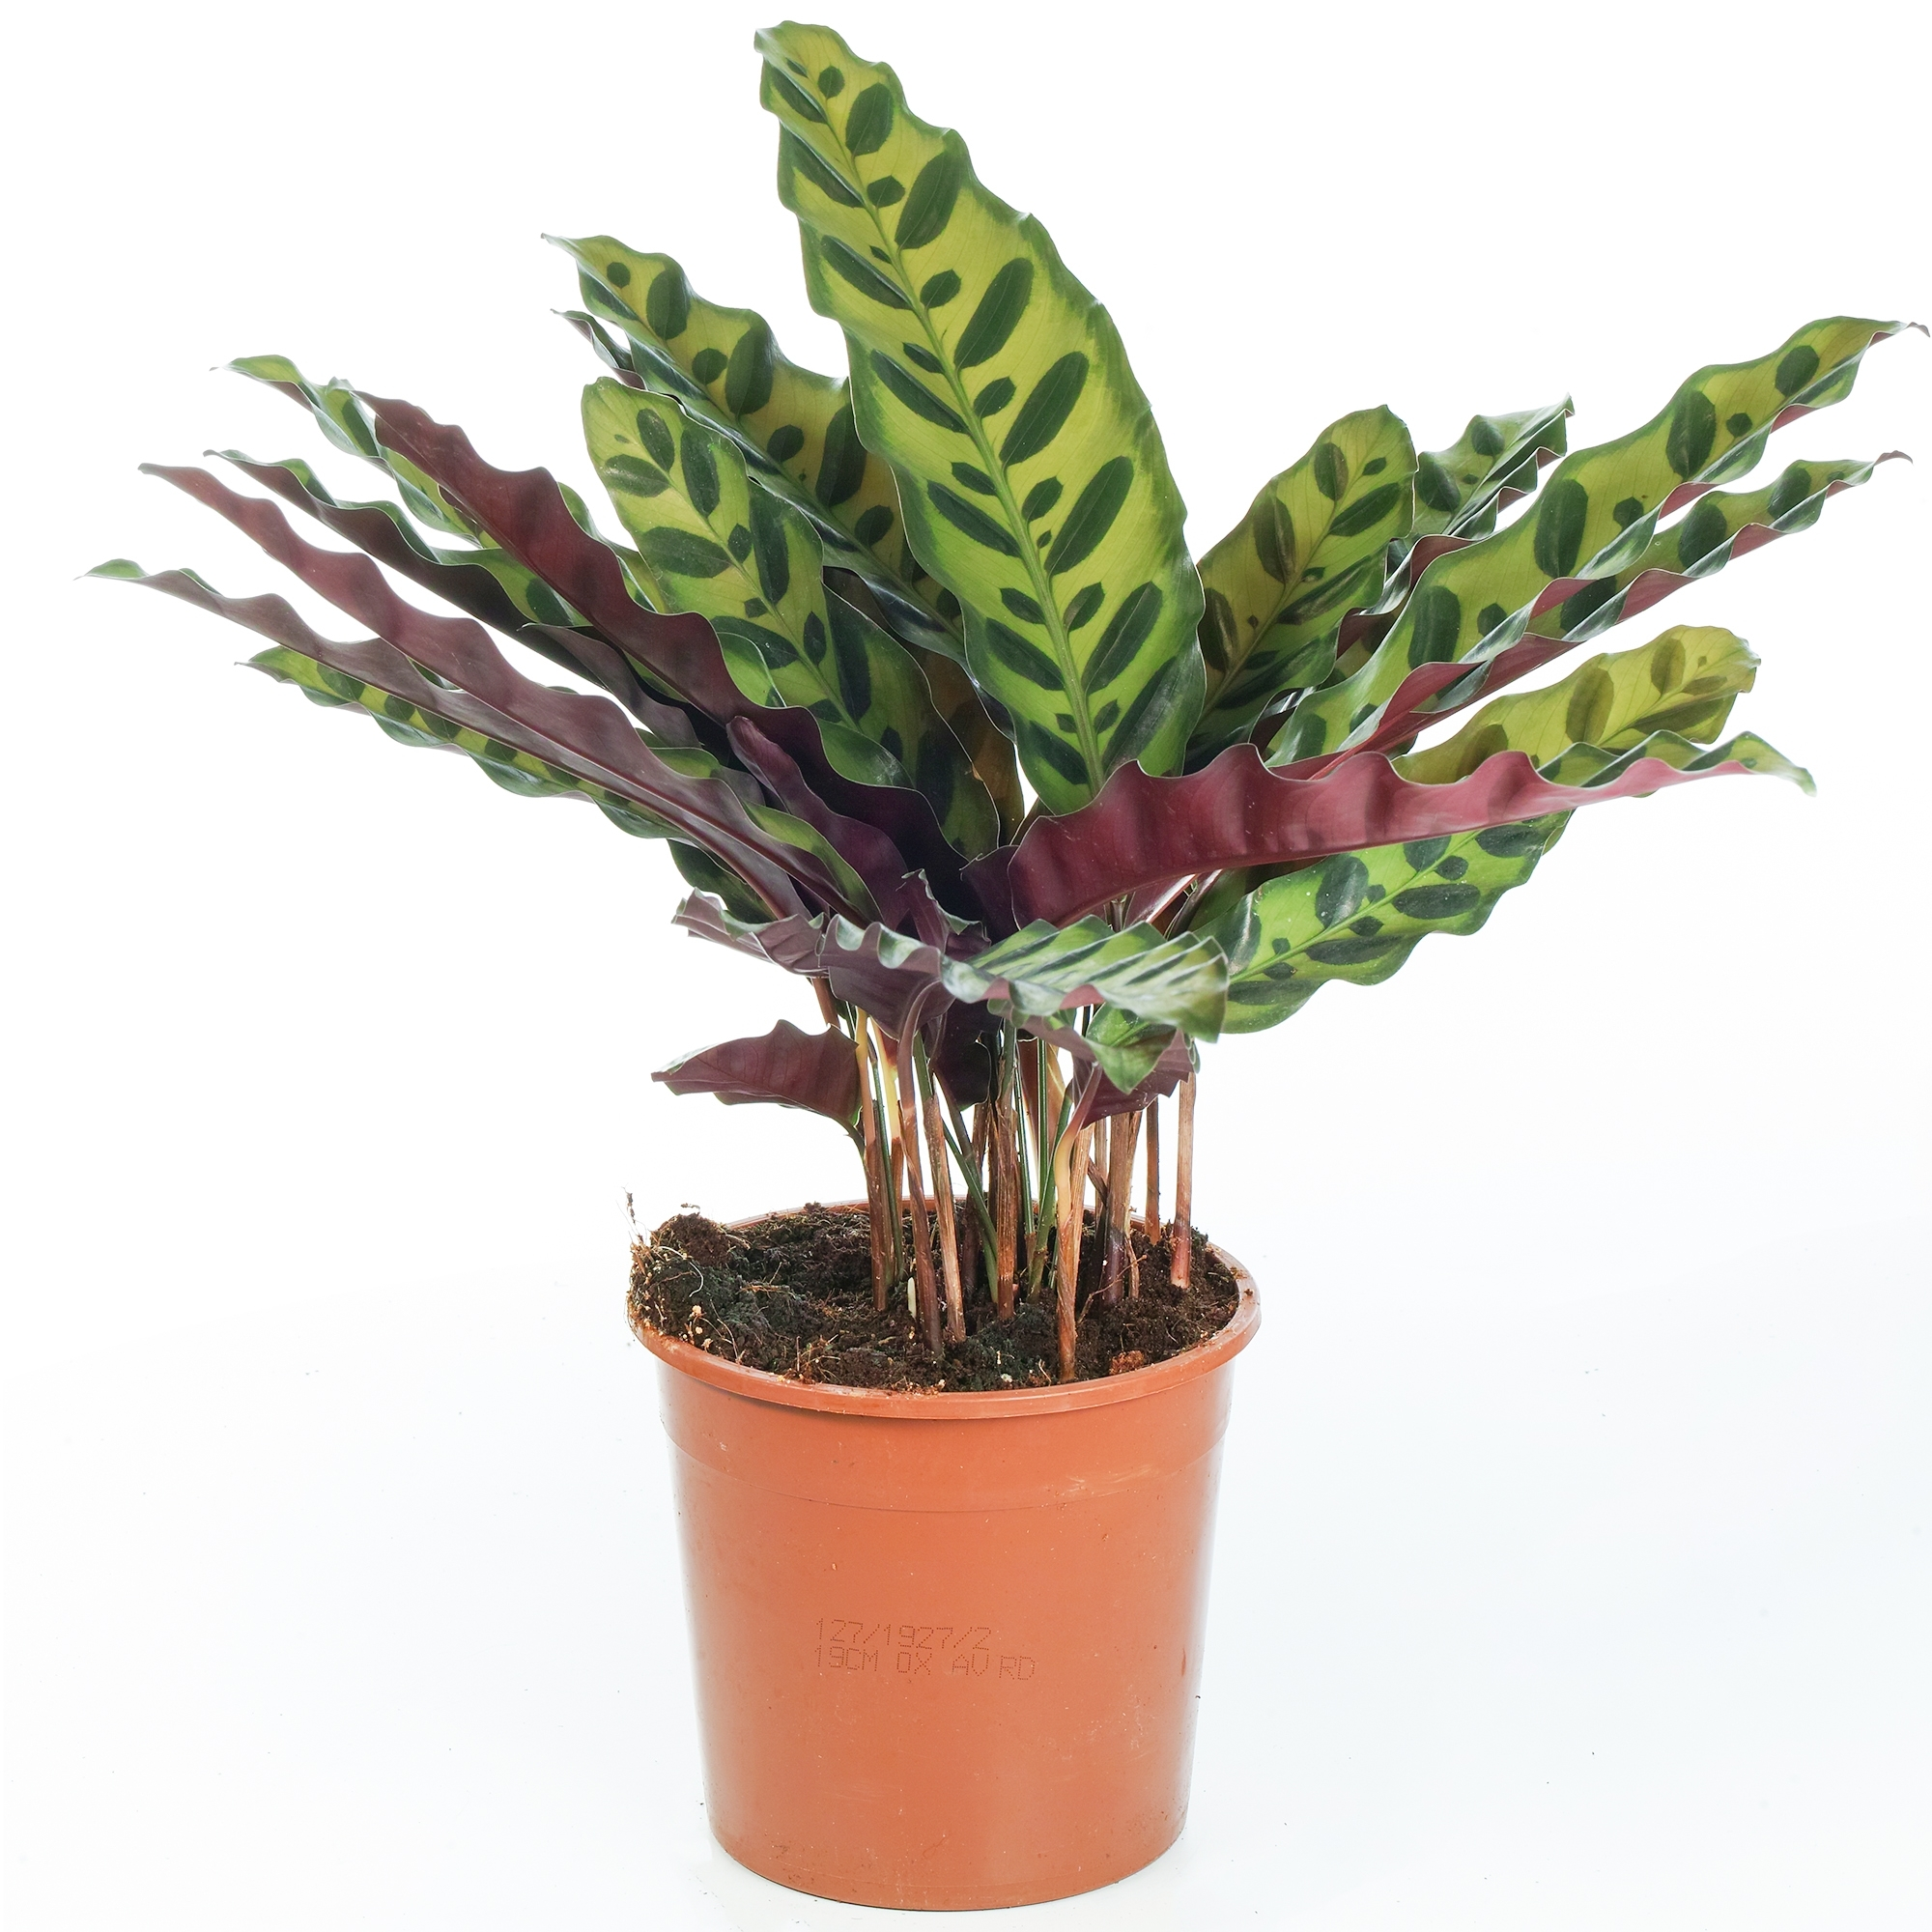 Calathea Rattlesnake Plant For Sale Houseplant Free Uk Delivery